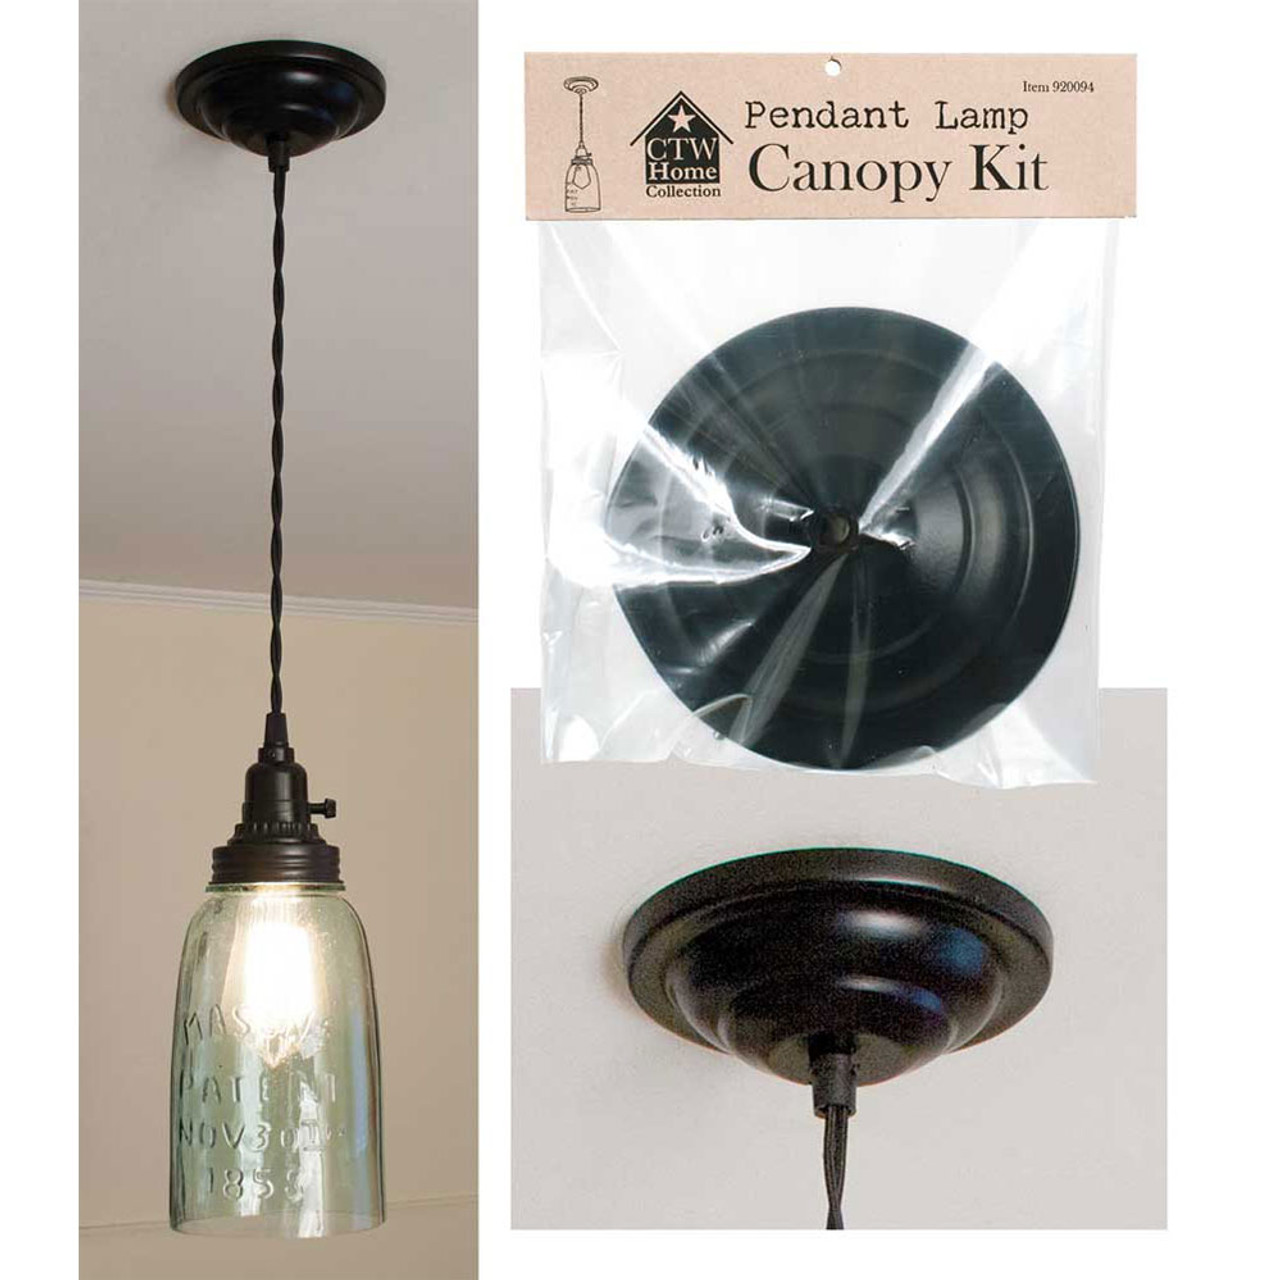 Optional Ceiling Canopy Kit to convert plug in lamp to hard wired.